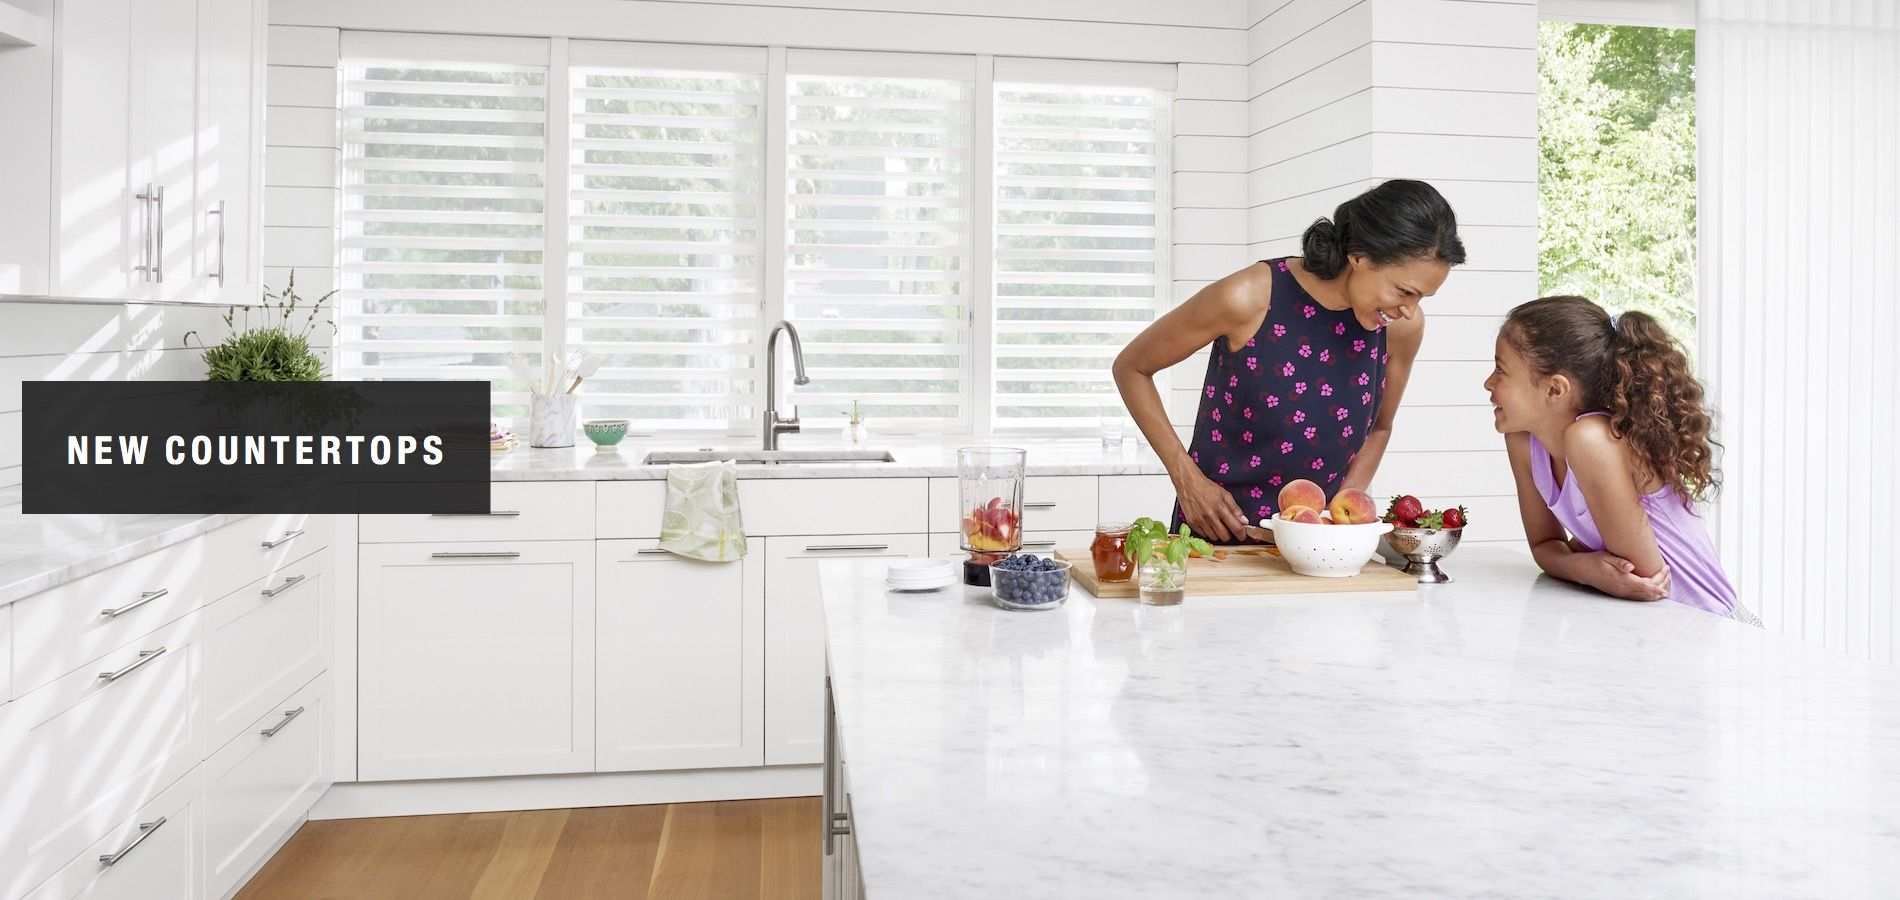 refresh your kitchen or bath with new countertops - ideas from